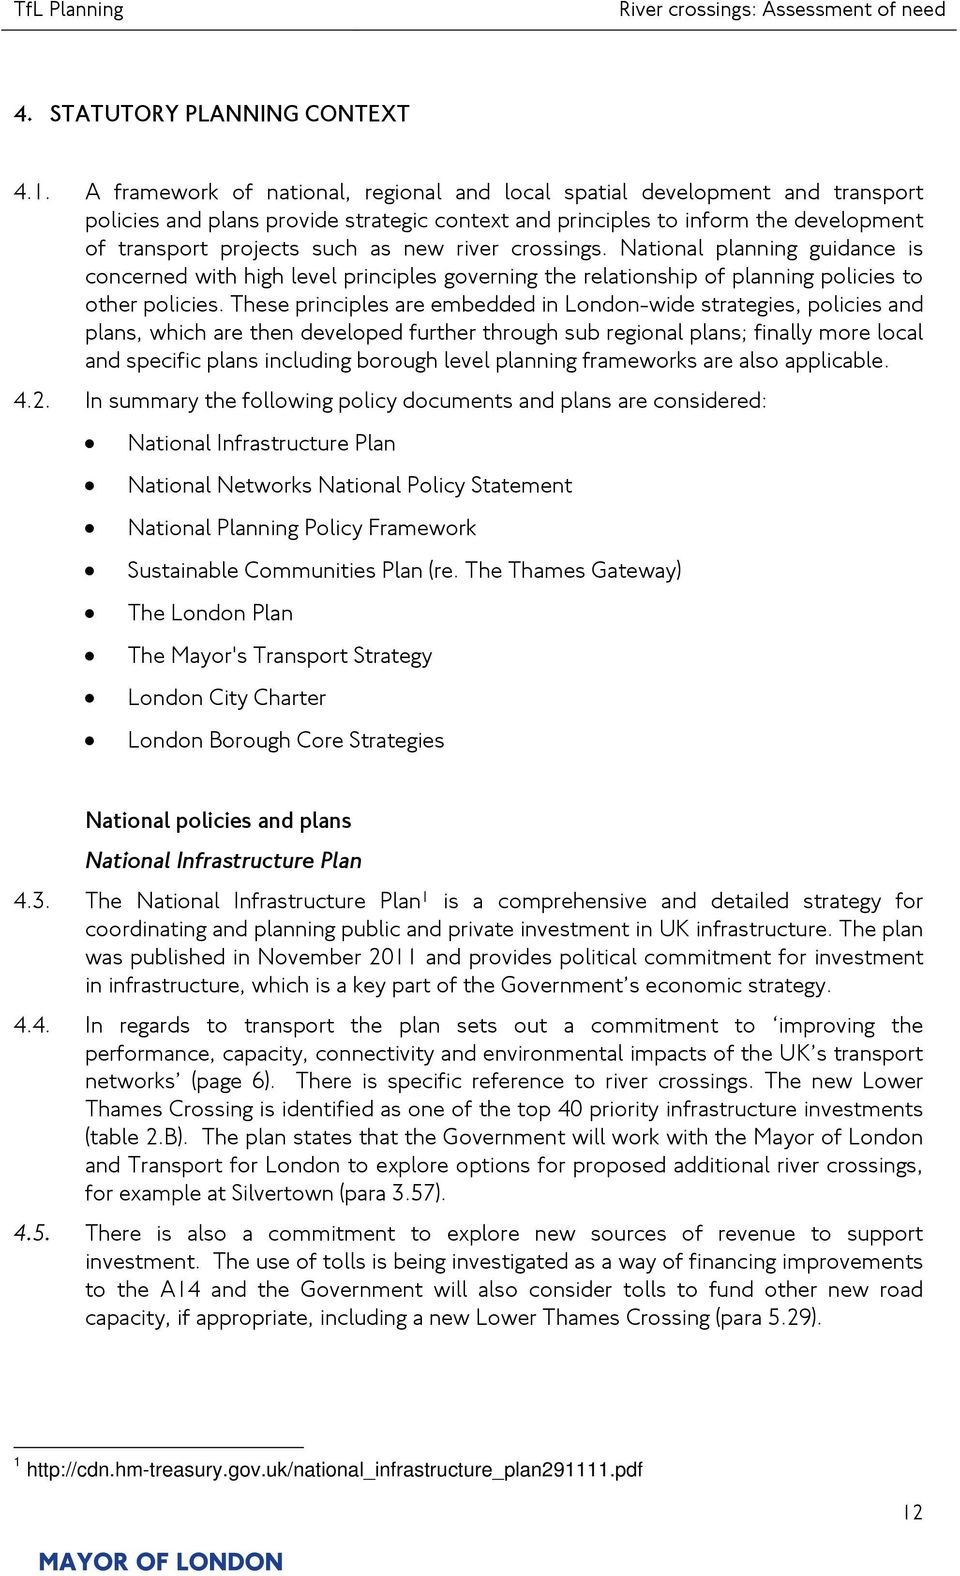 river crossings. National planning guidance is concerned with high level principles governing the relationship of planning policies to other policies.